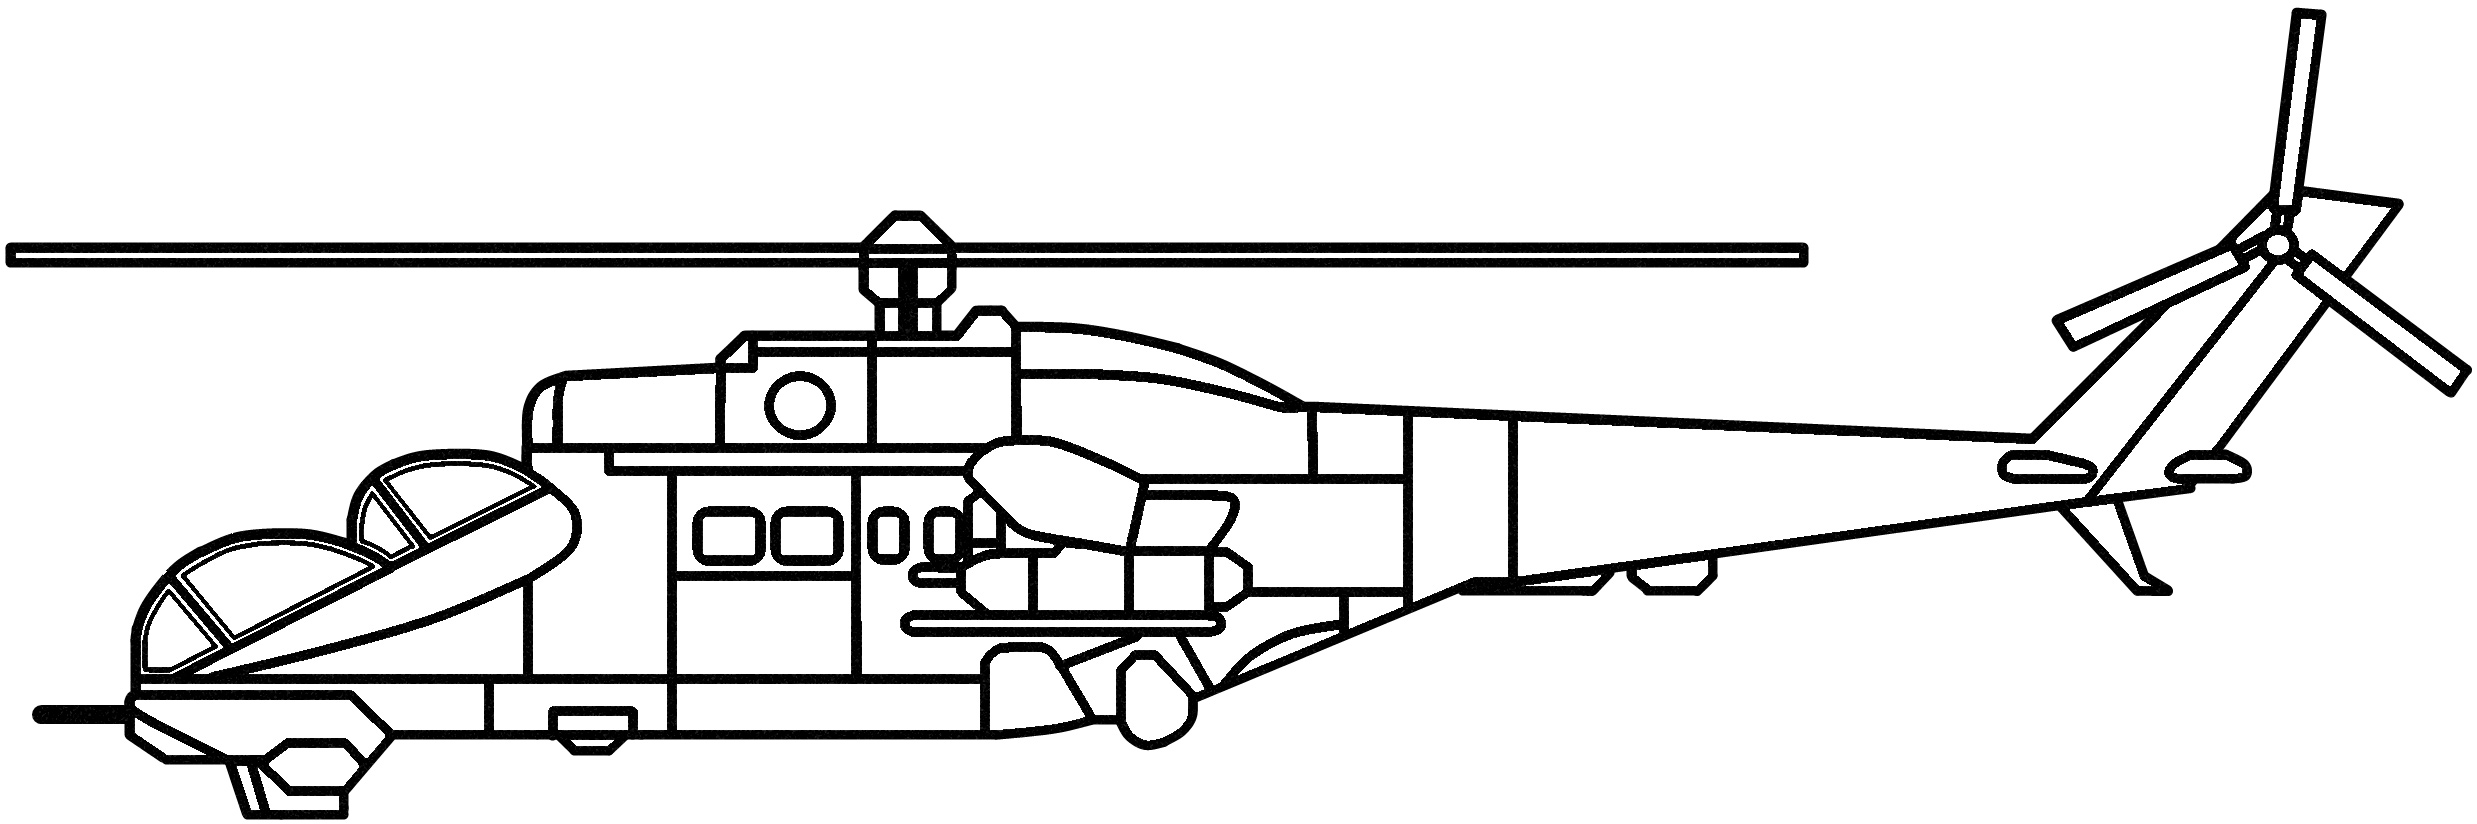 helicopter colouring pictures free printable helicopter coloring pages for kids pictures colouring helicopter 1 1